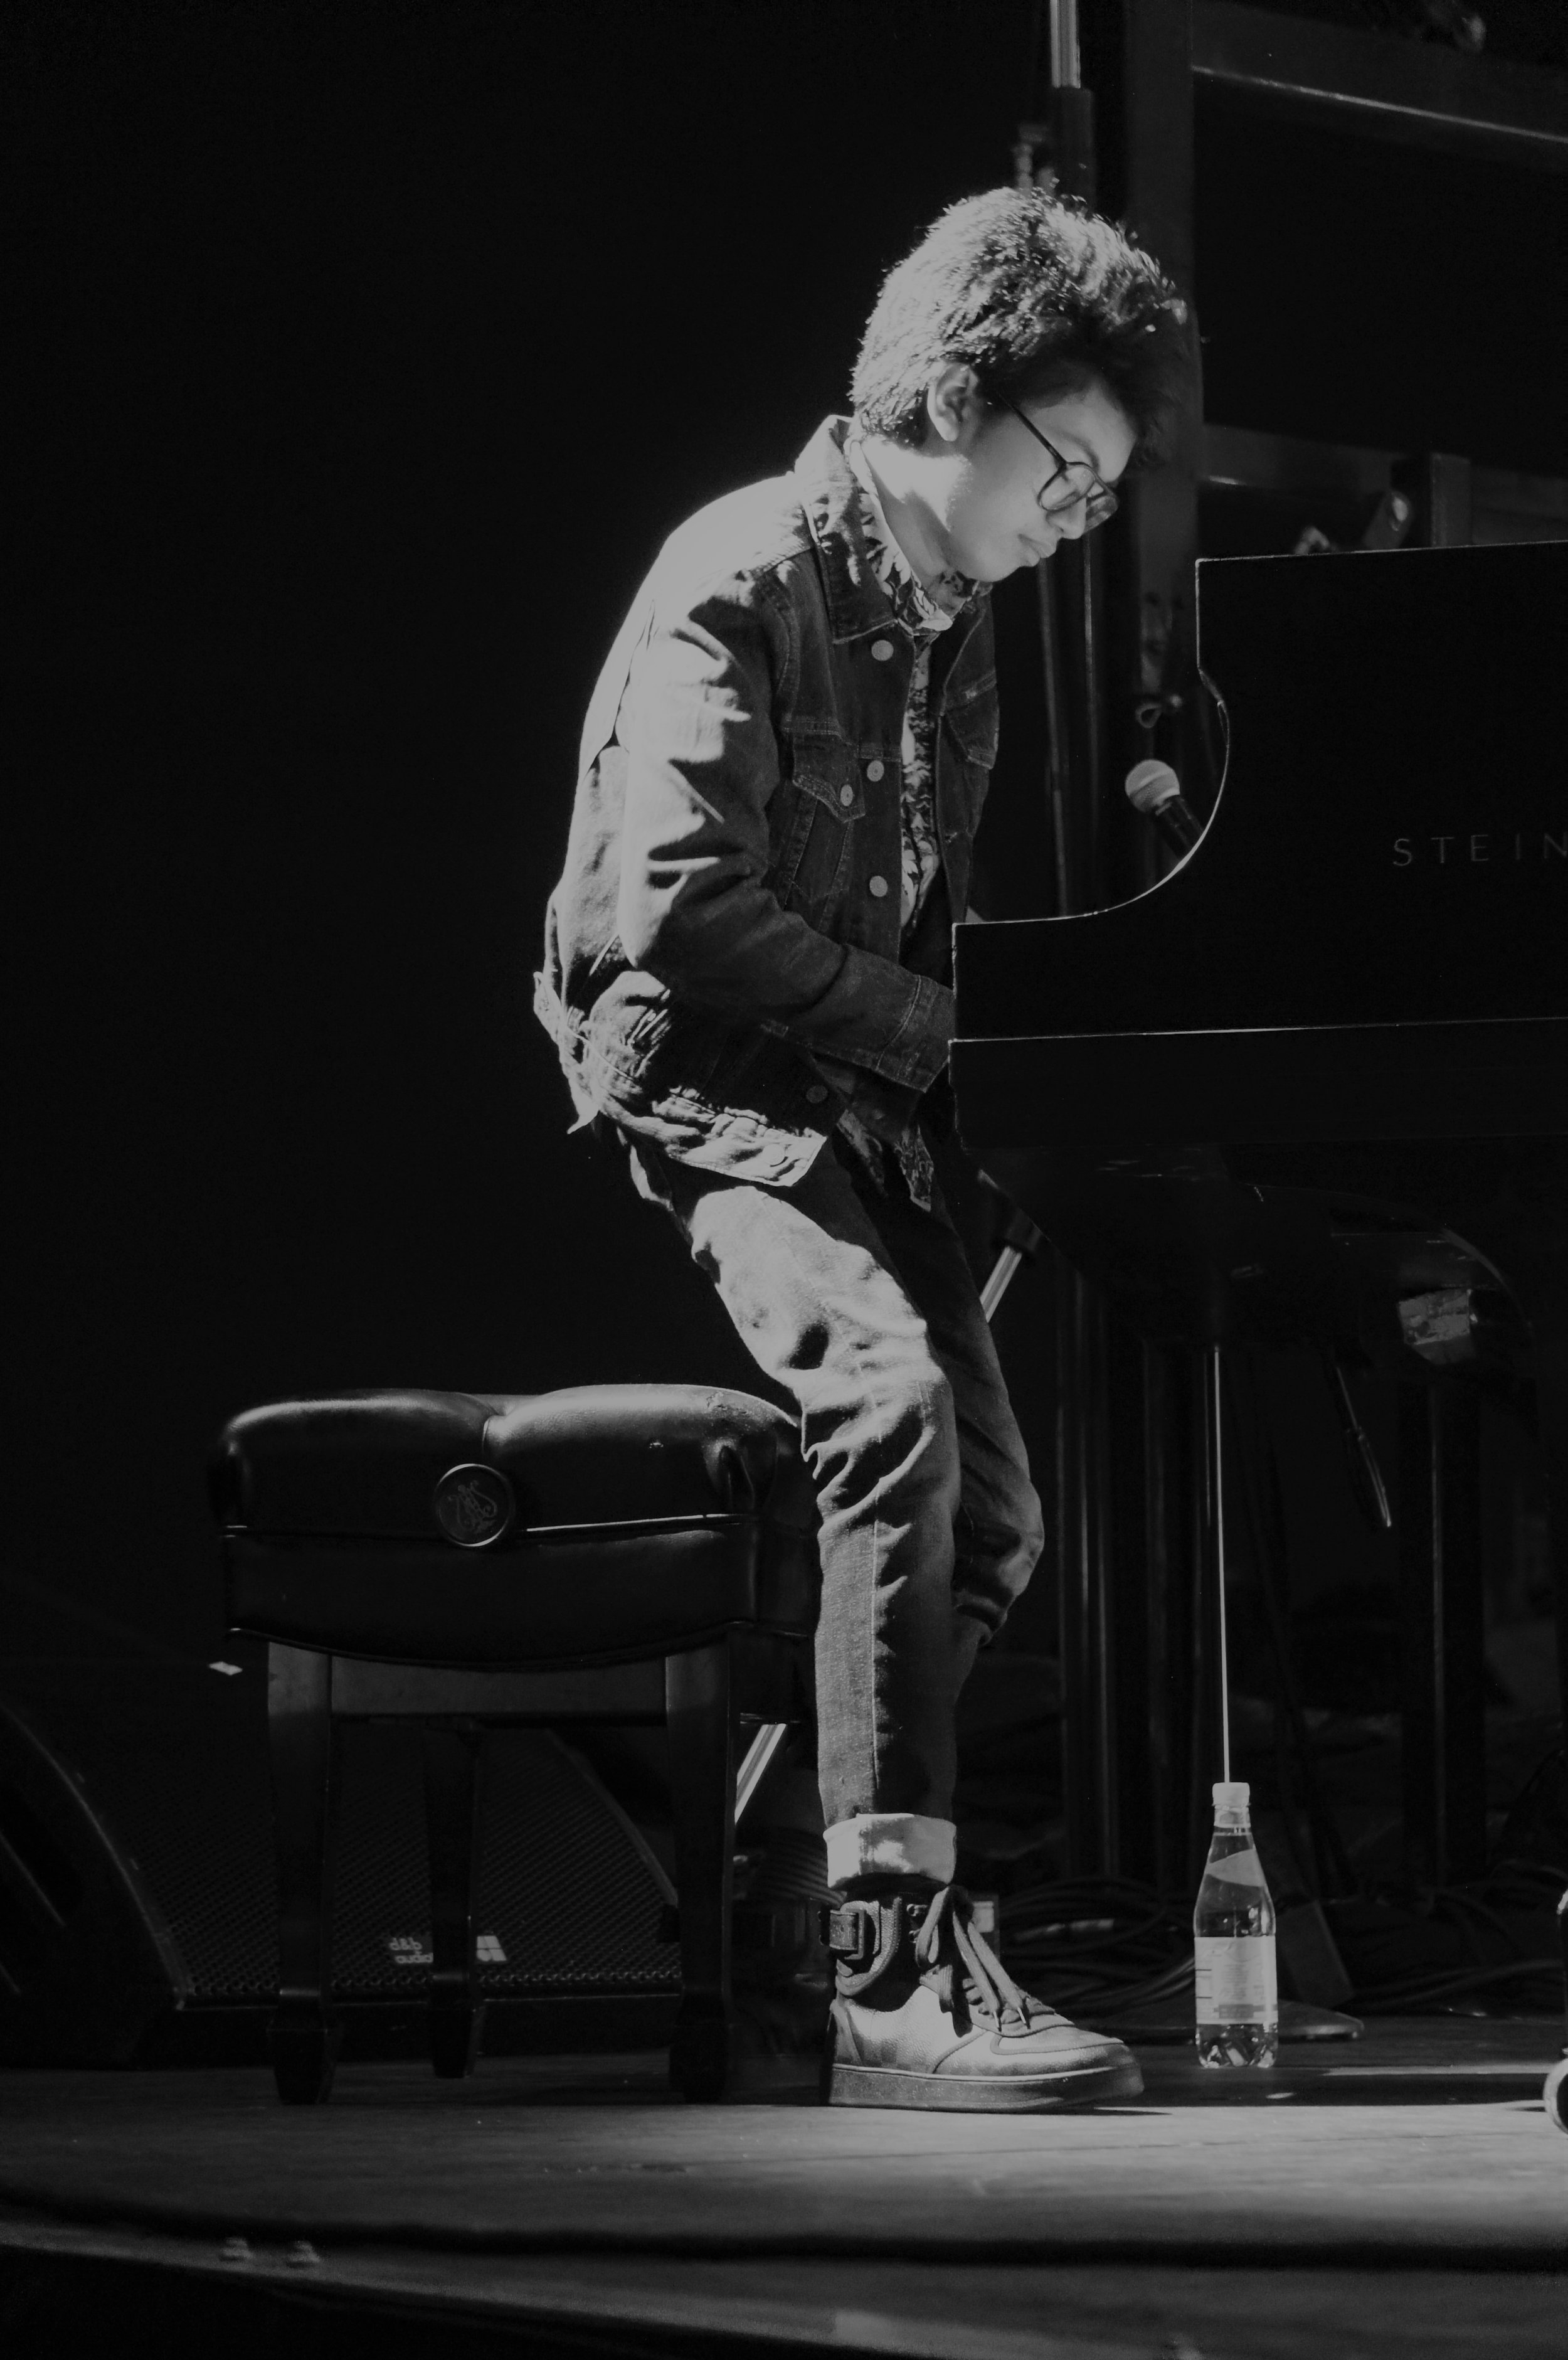 piano prodigy Joey Alexander closes out the DC Jazz Festival with his performance at The Wharf on 6/16/19 (photo by Bridget Arnwine)